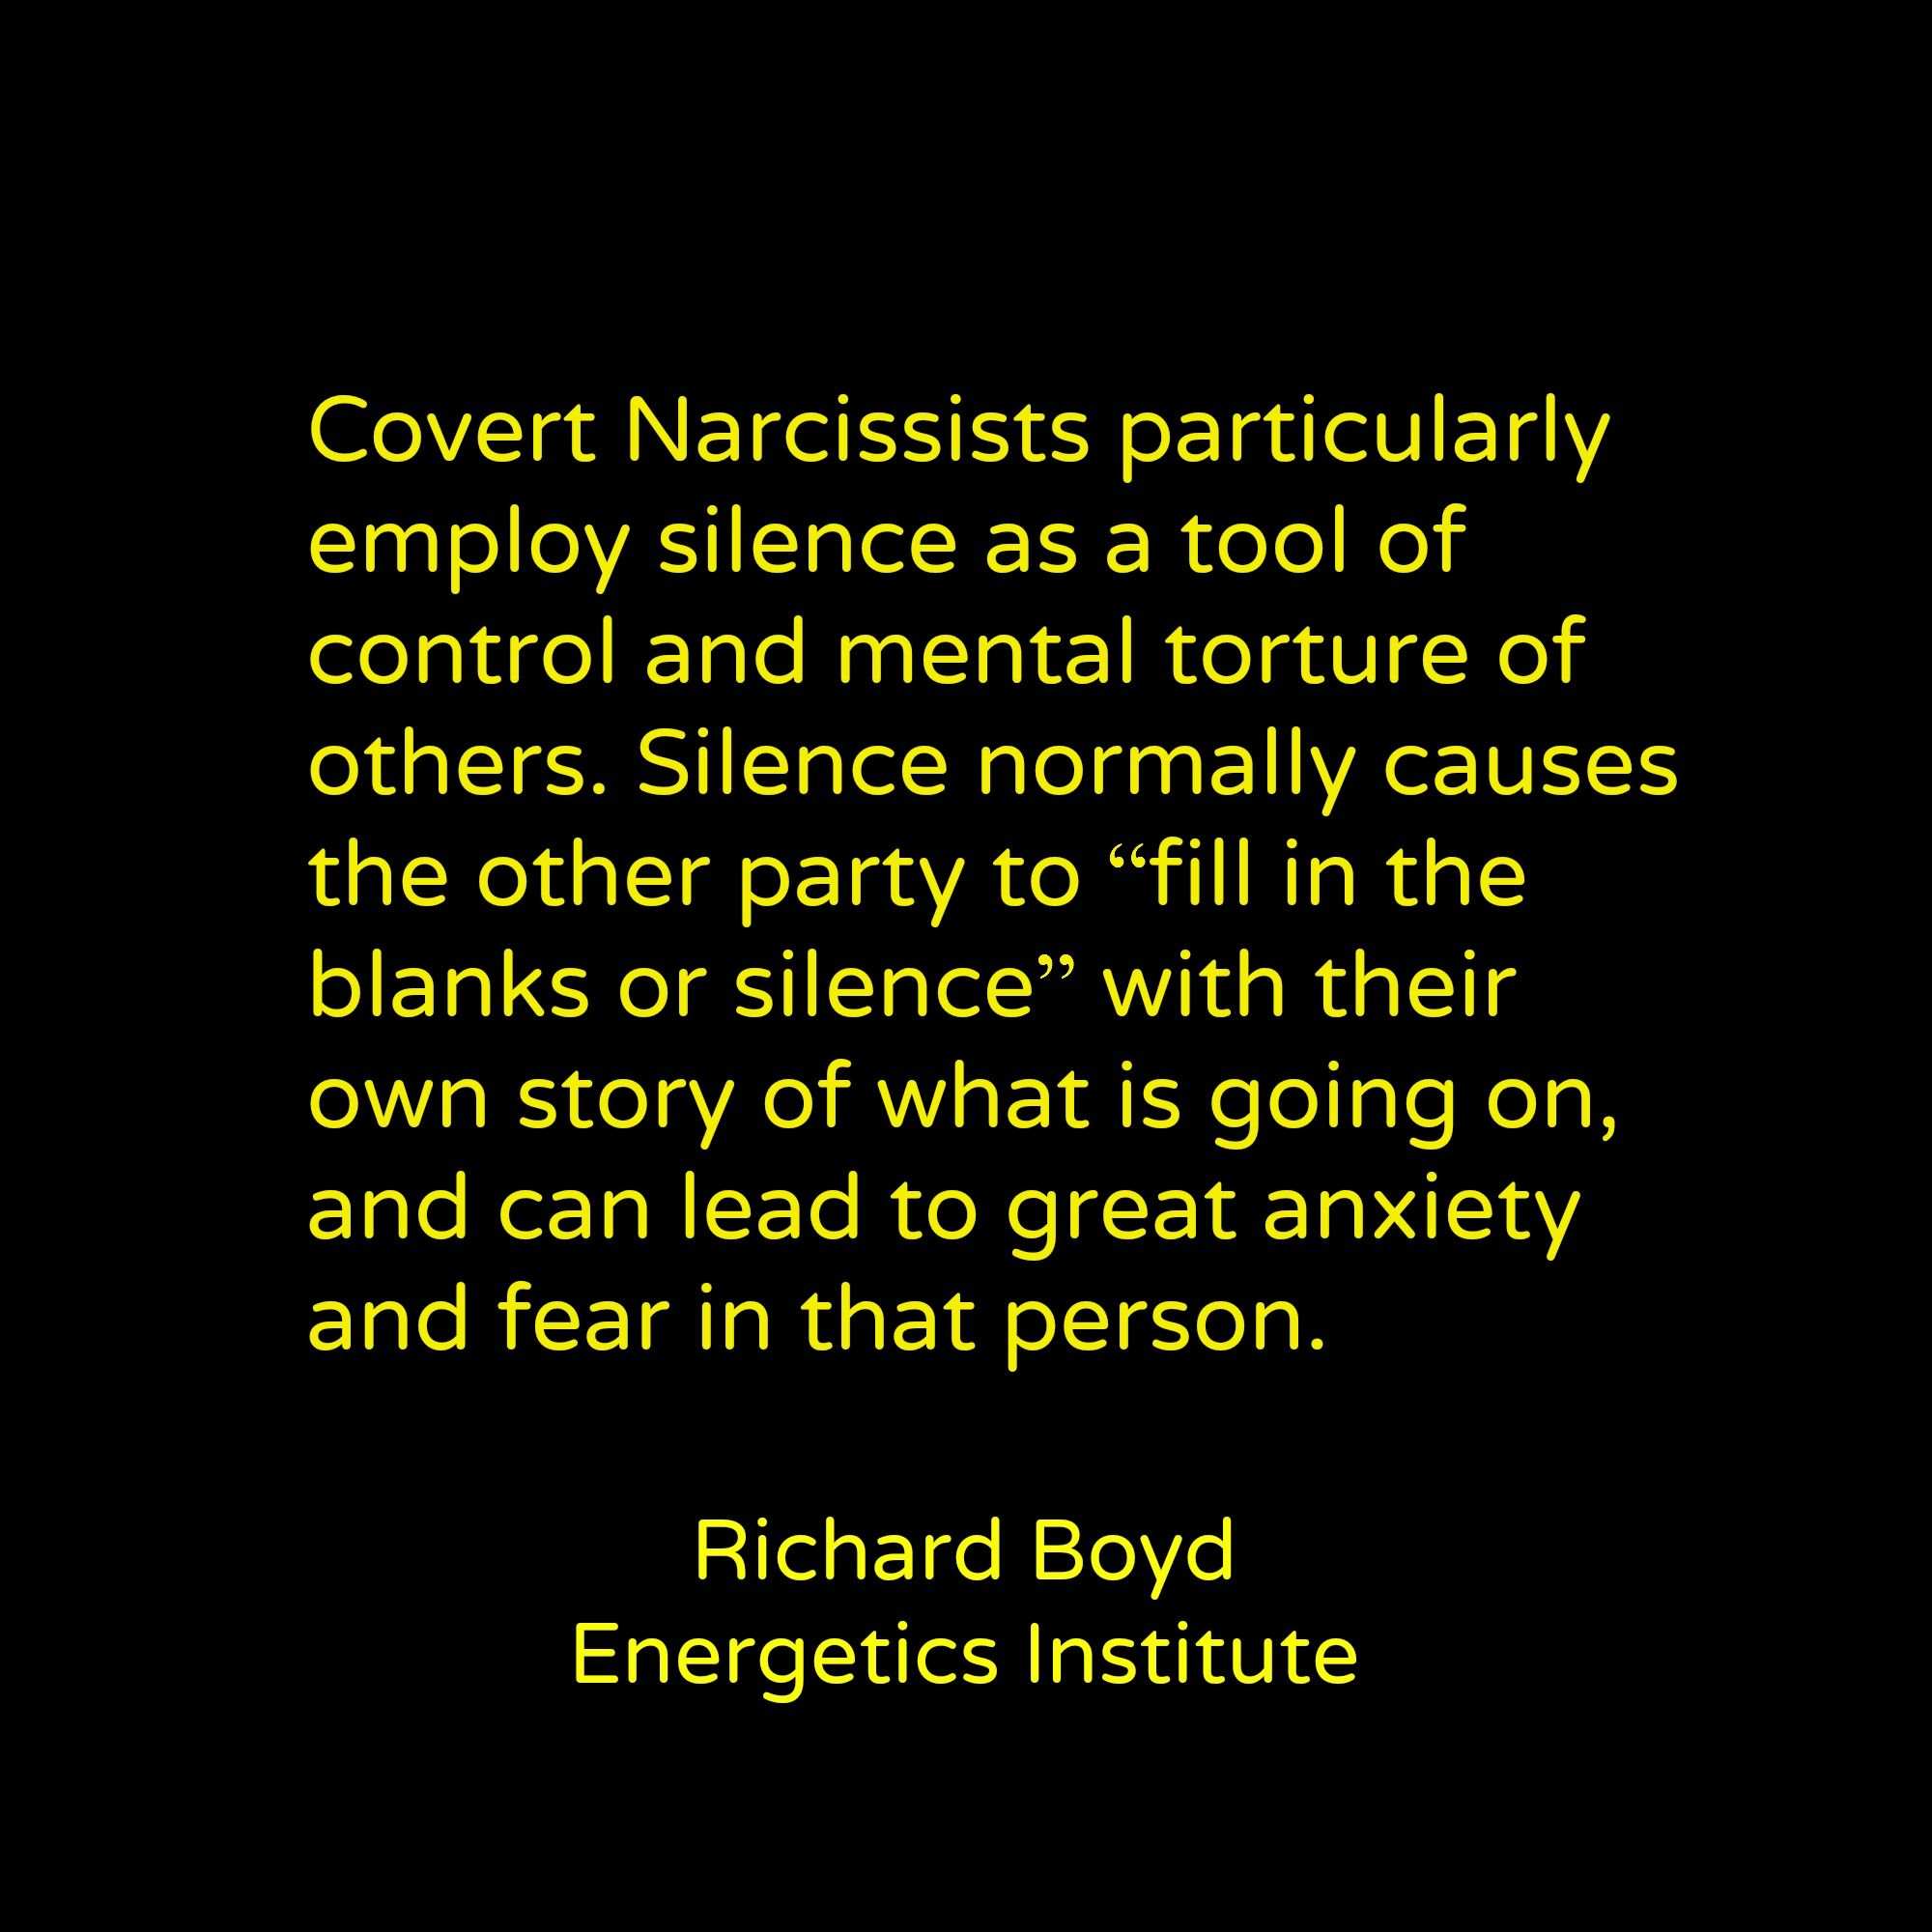 Covert Narcissists particularly employ silence as a tool of